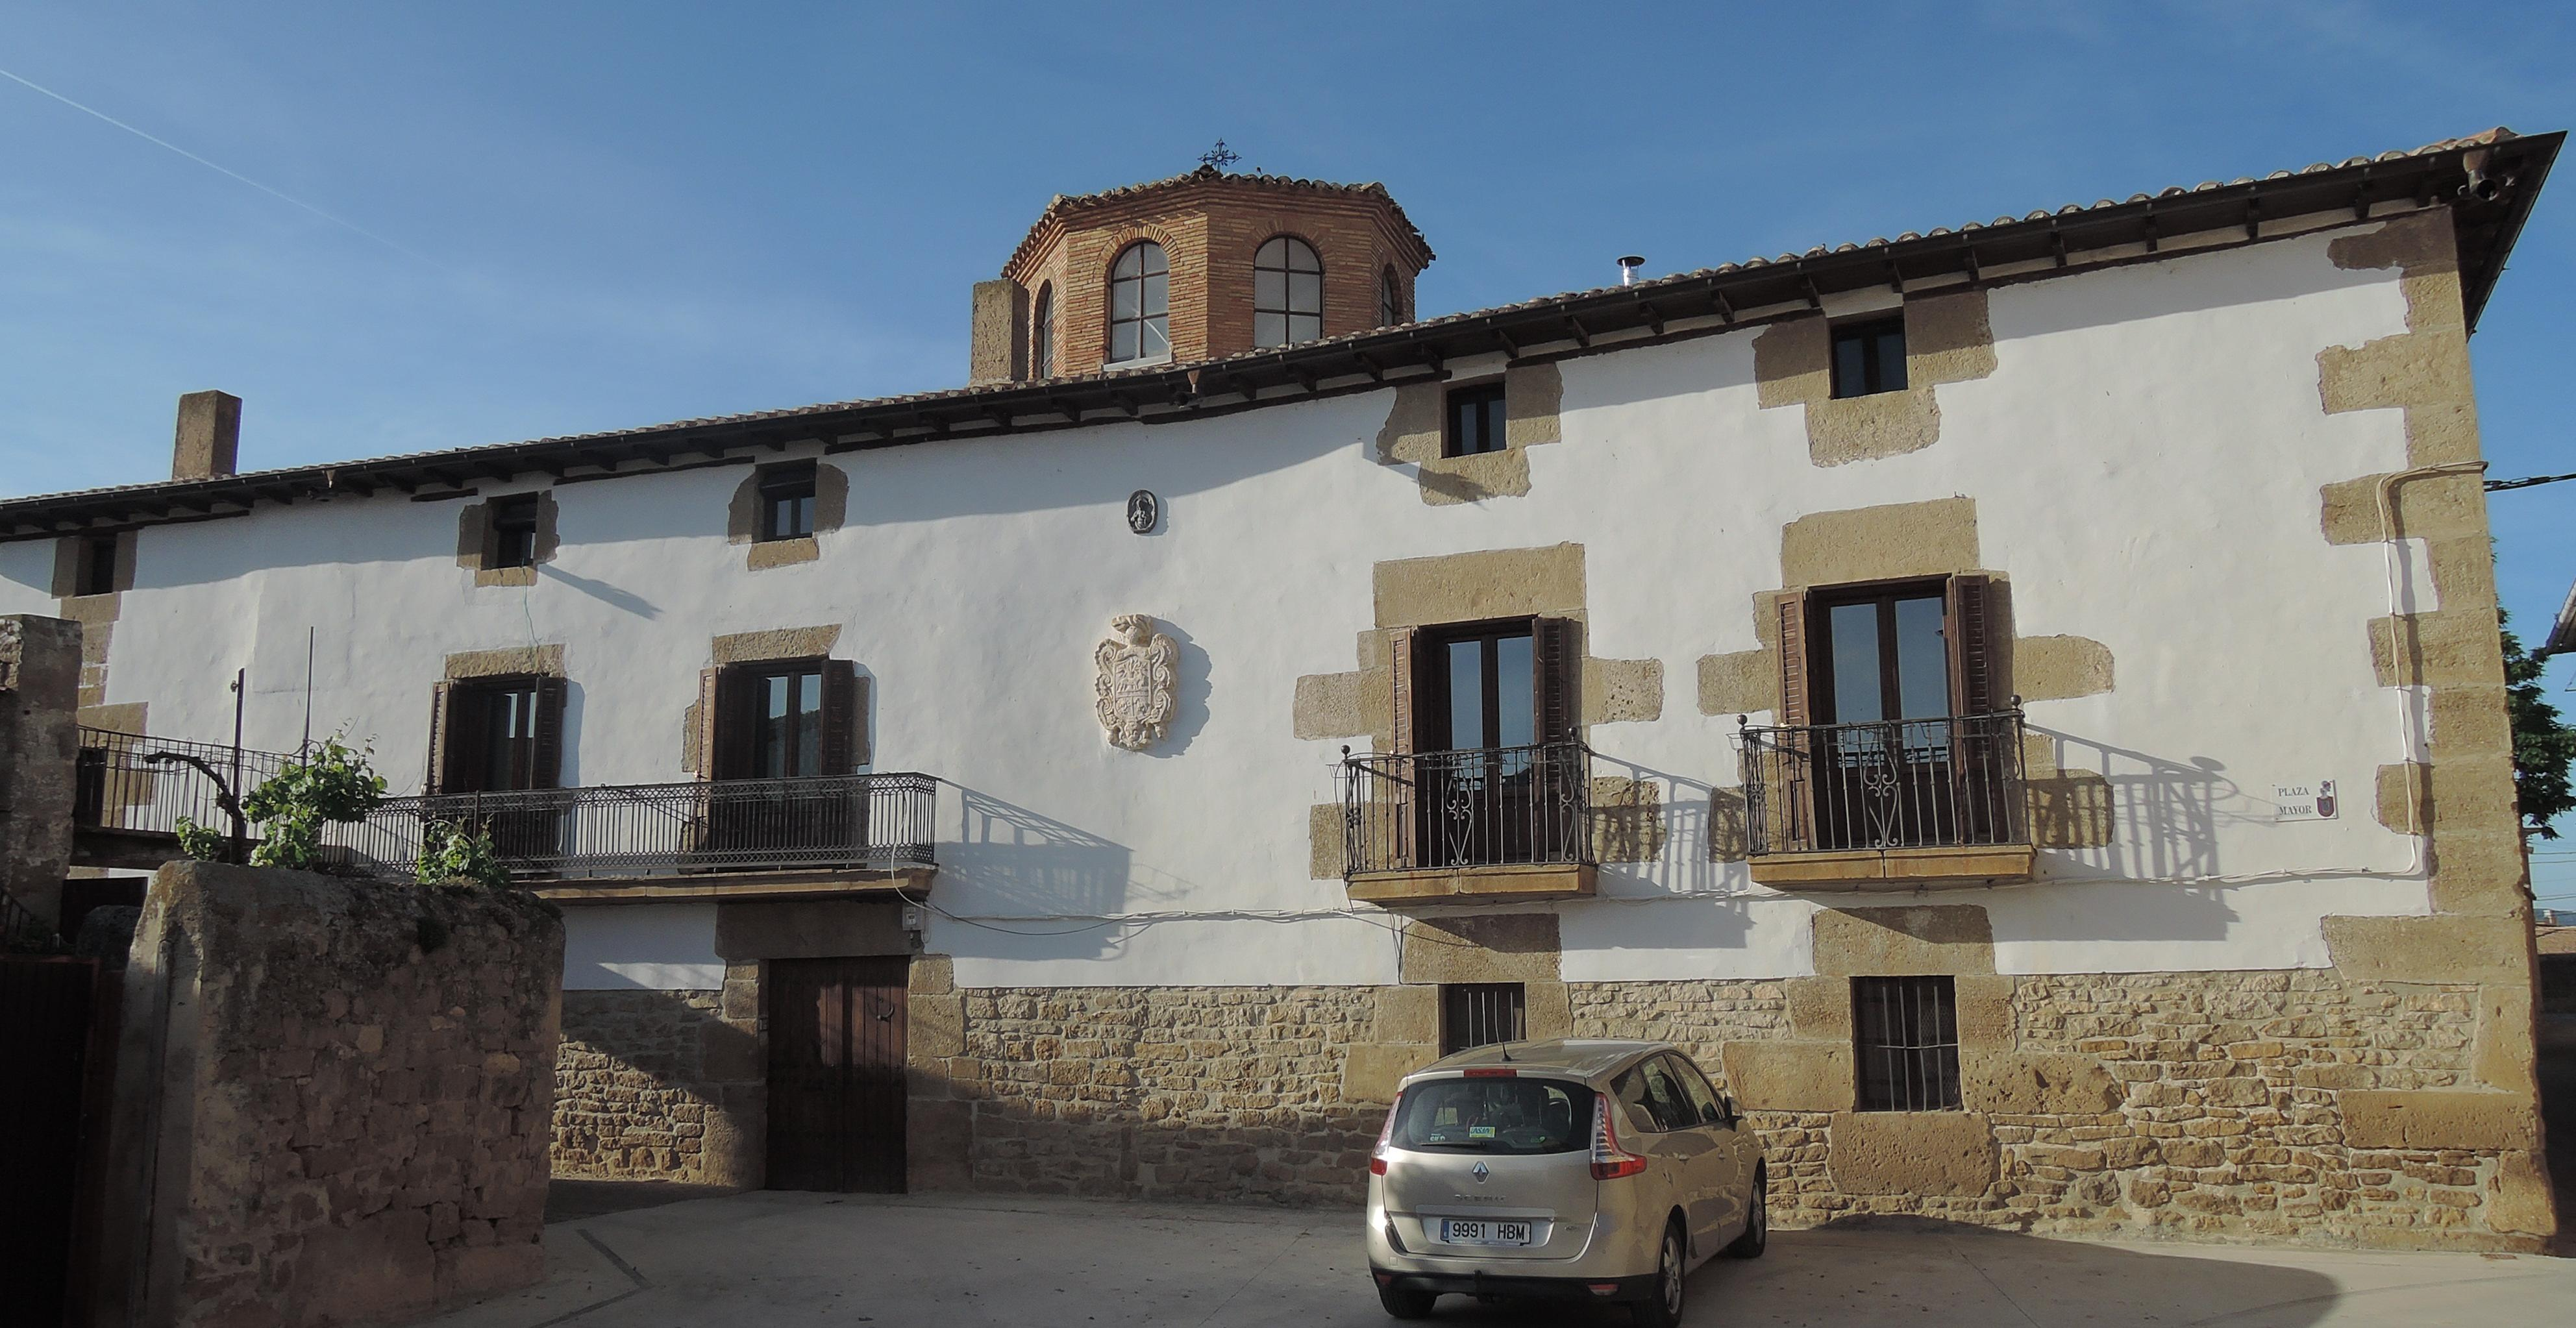 Old nobility house in Beire.